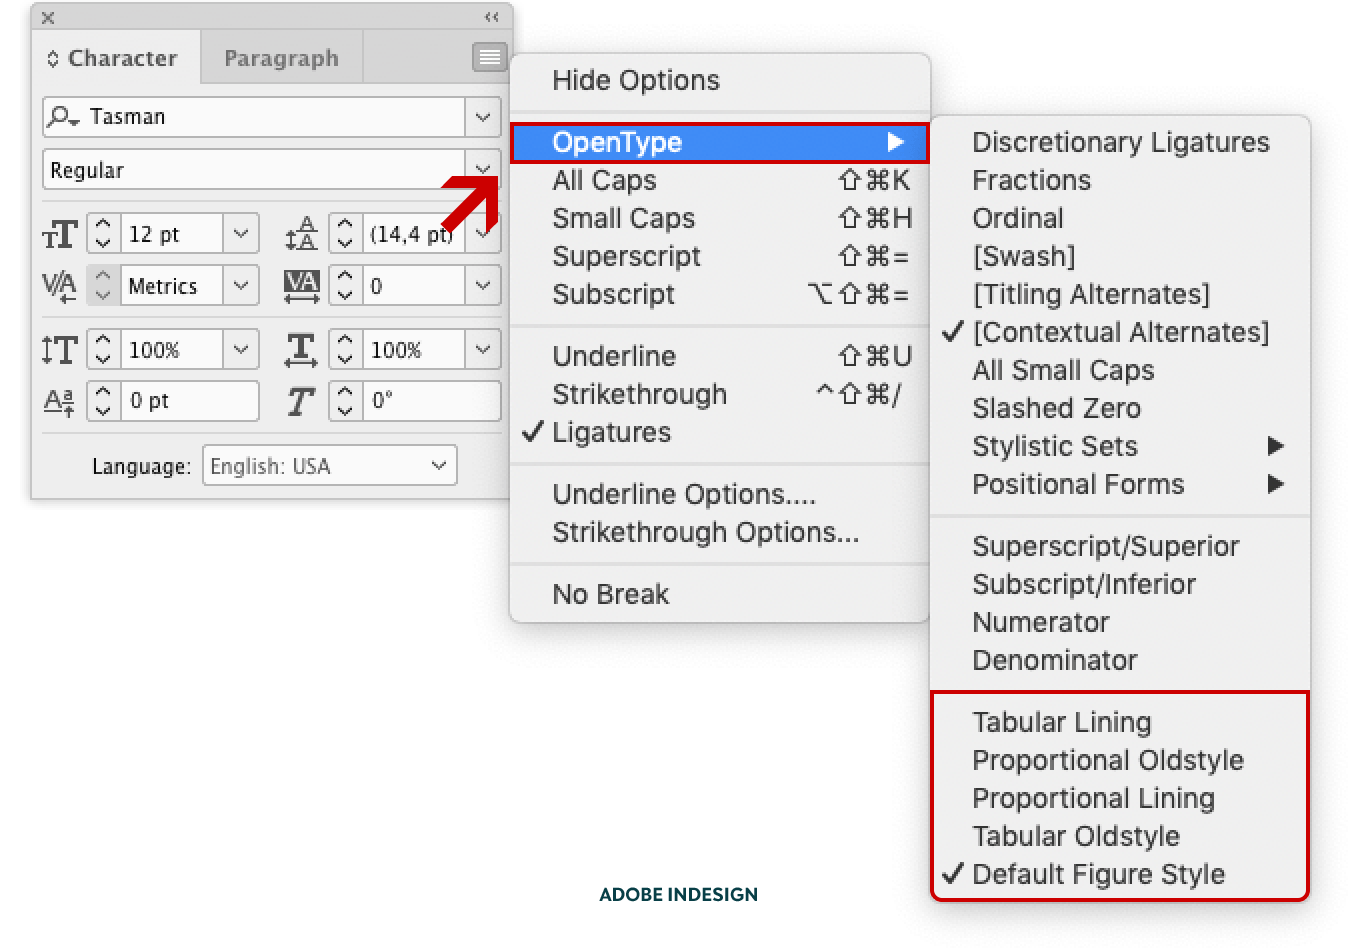 Screenshot showing the location of the different figure styles in Adobe InDesign CC.